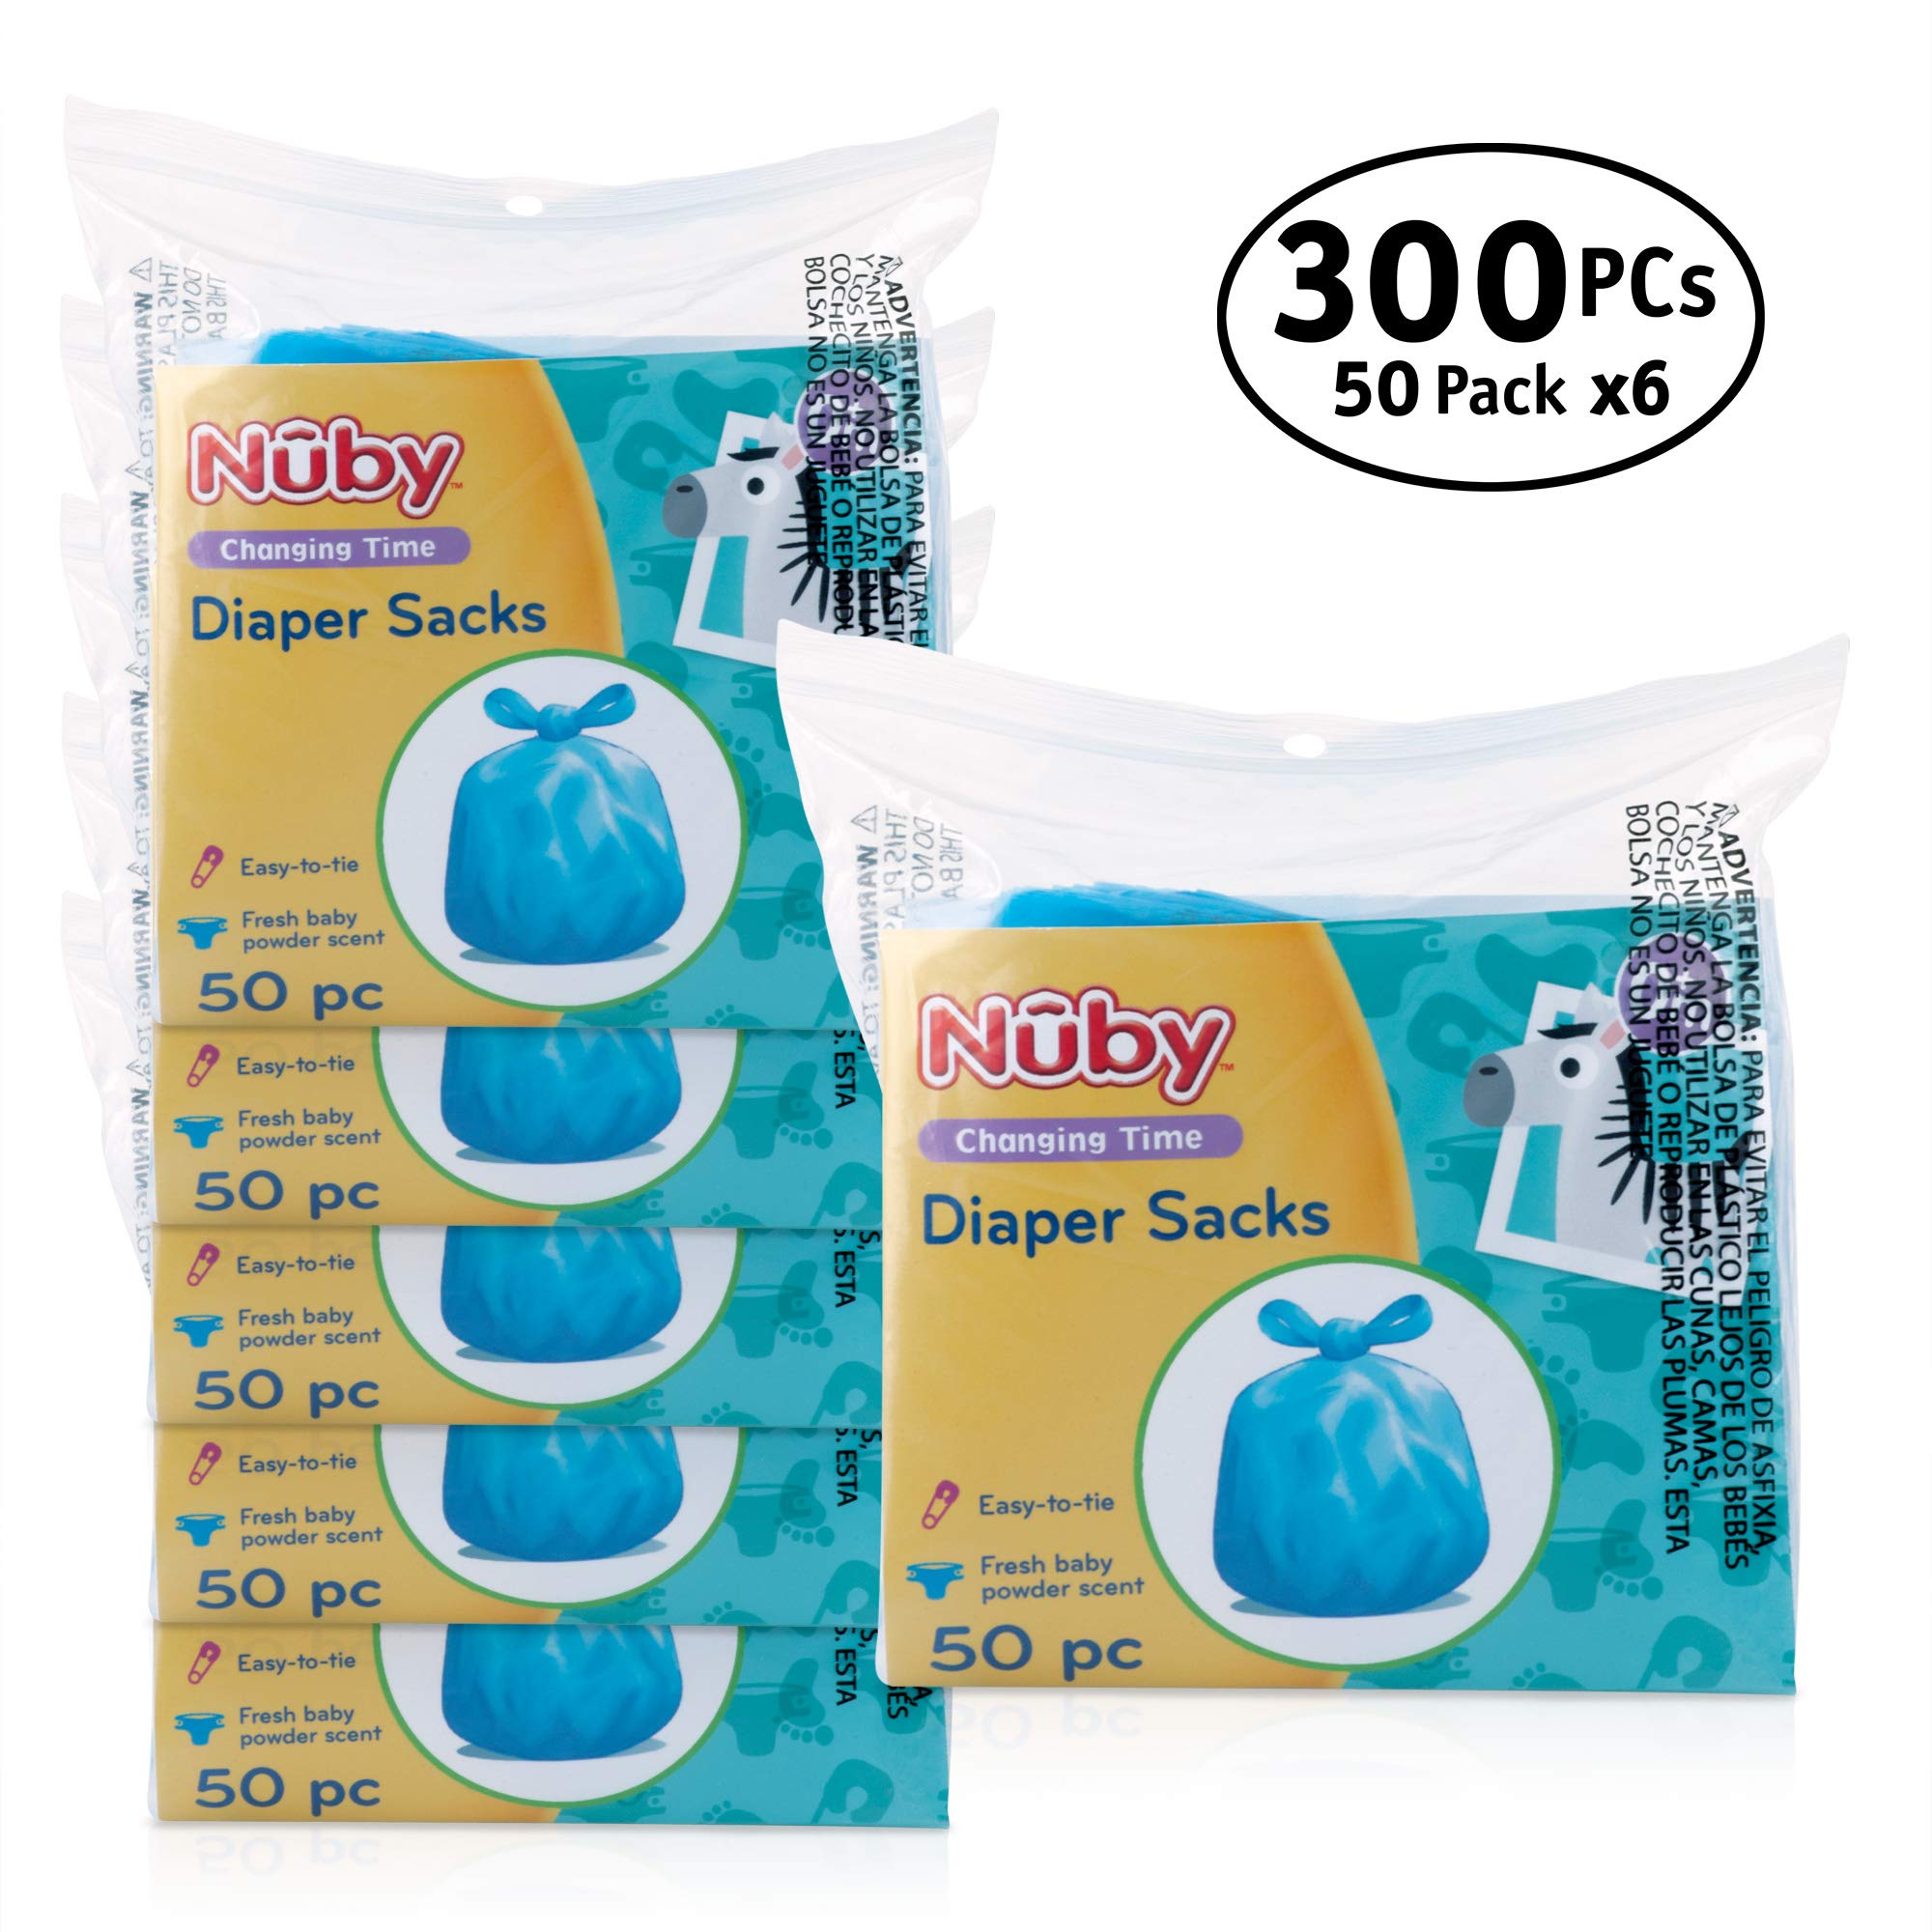 Nuby Diaper Bags, 300 Count (6 Packages) by Nuby